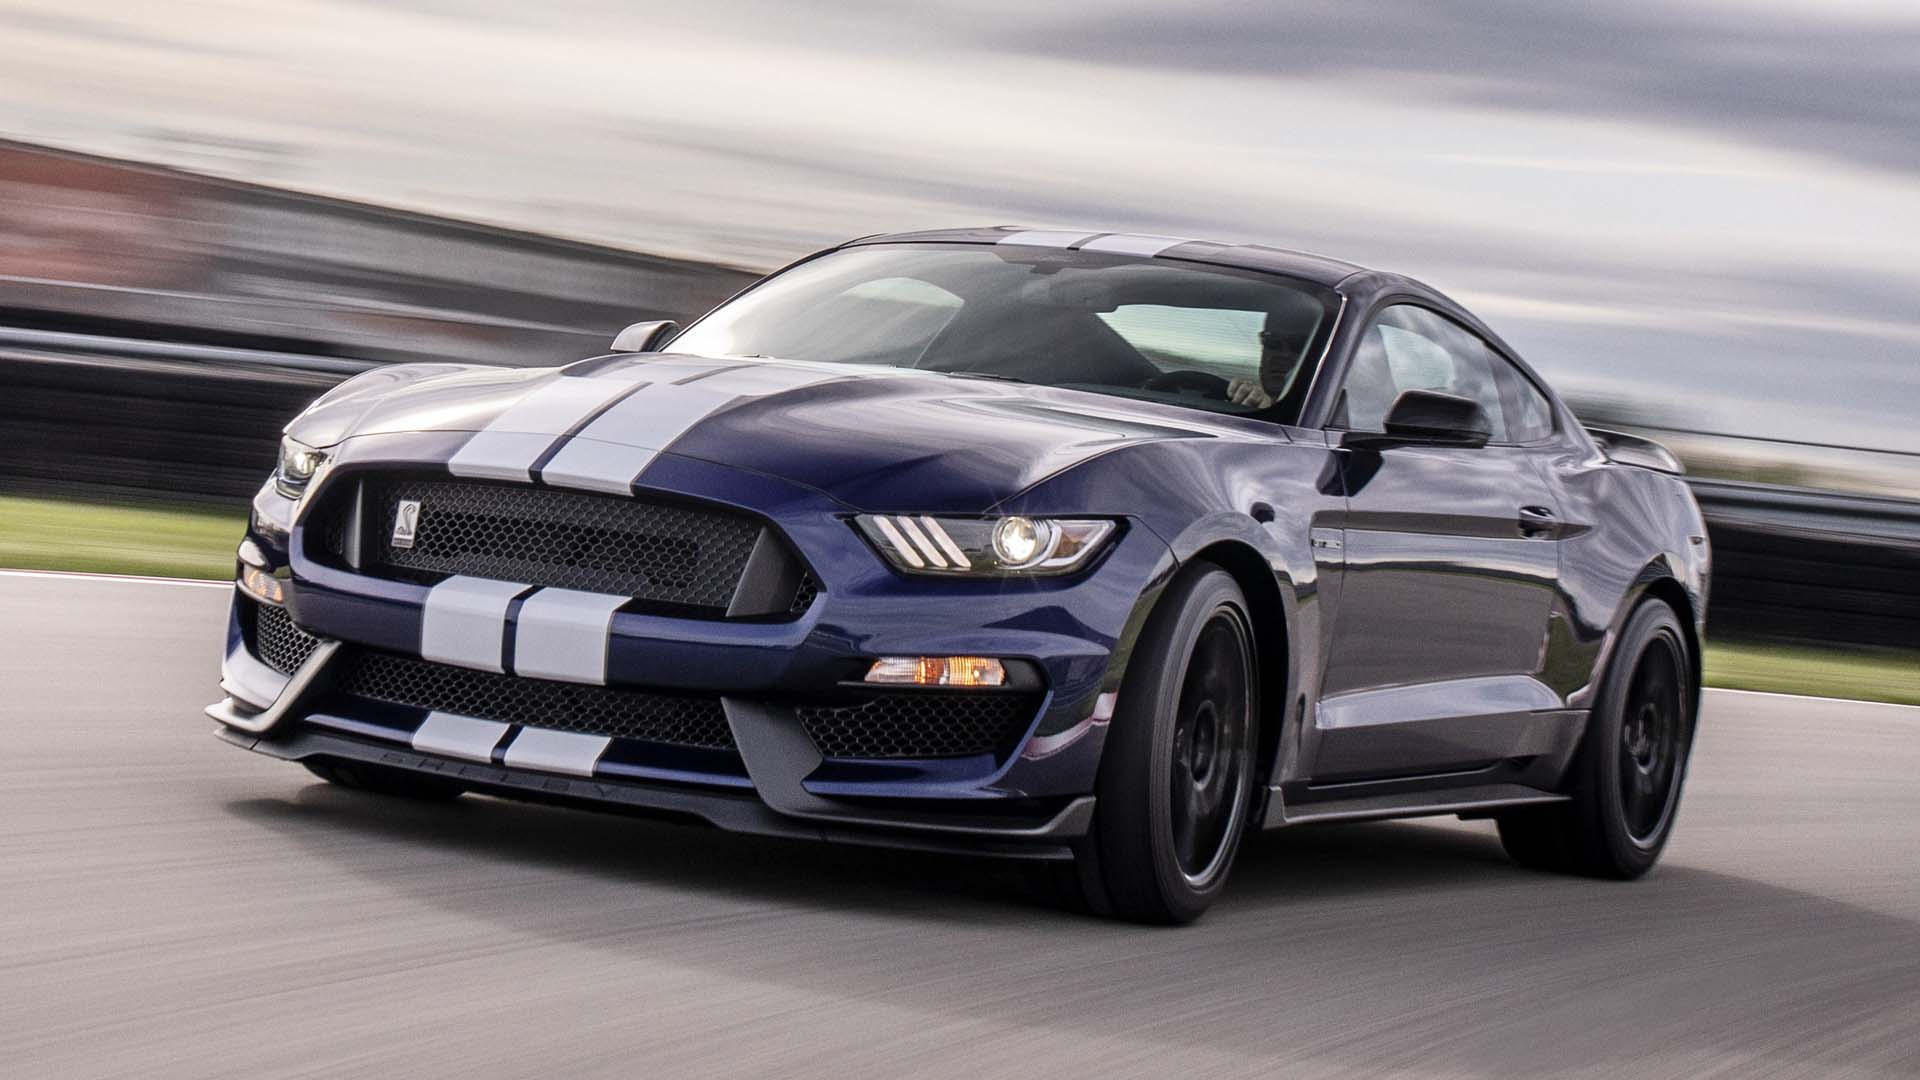 38 New 2020 Mustang Shelby Gt350 Images